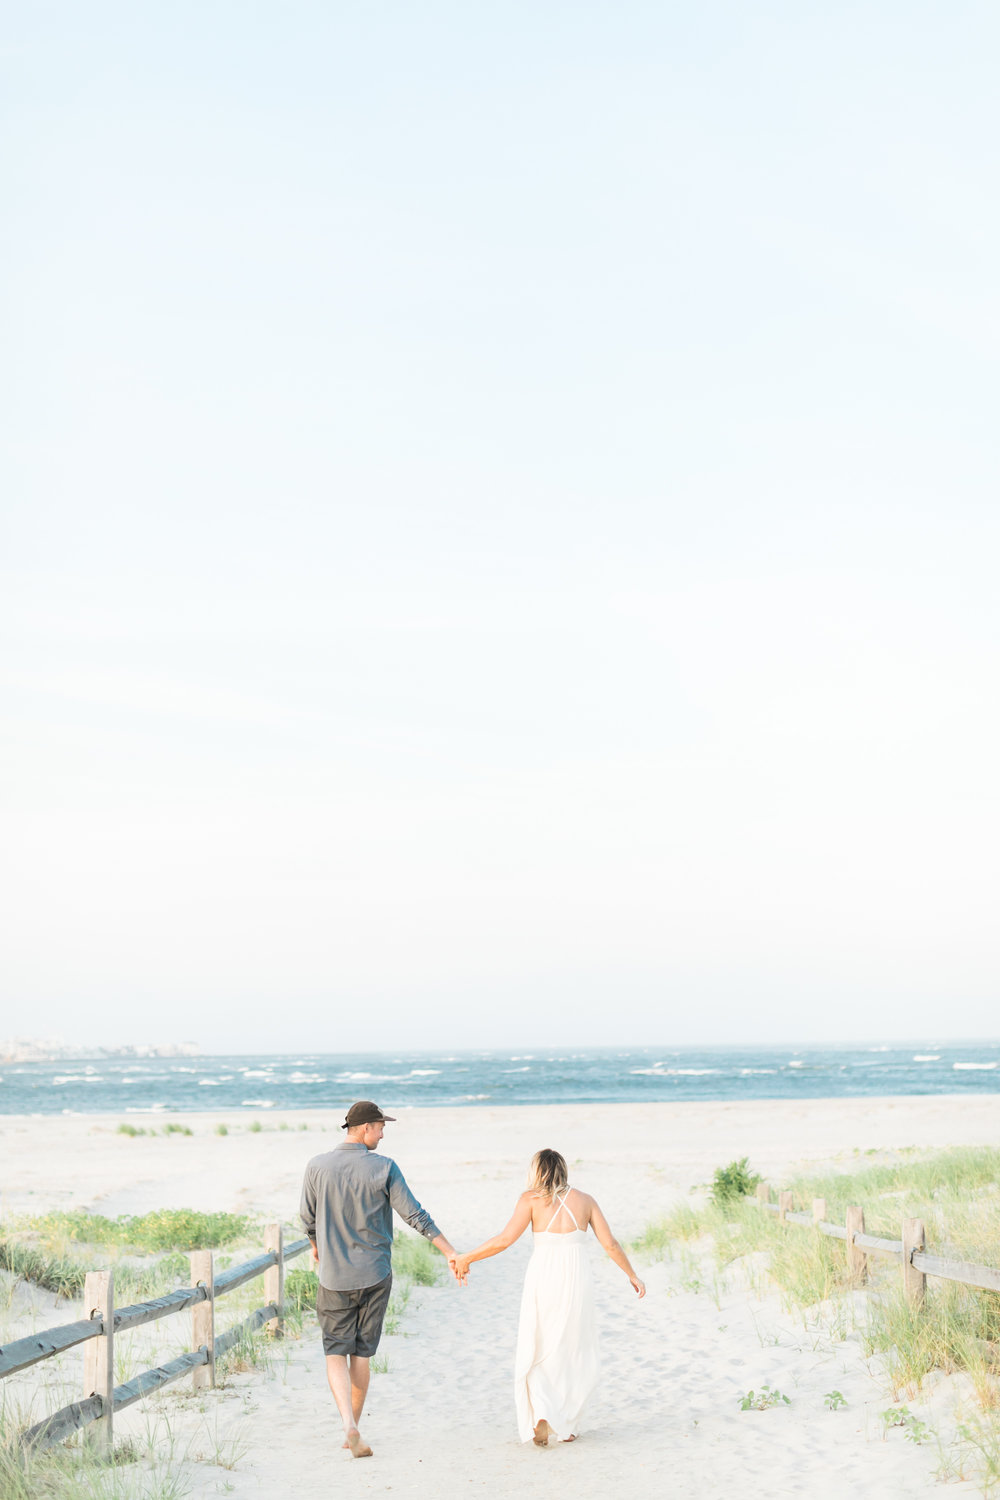 StephandPat_Engagement_OceanCityNJ_Photographer_MagdalenaKernan-88.jpg